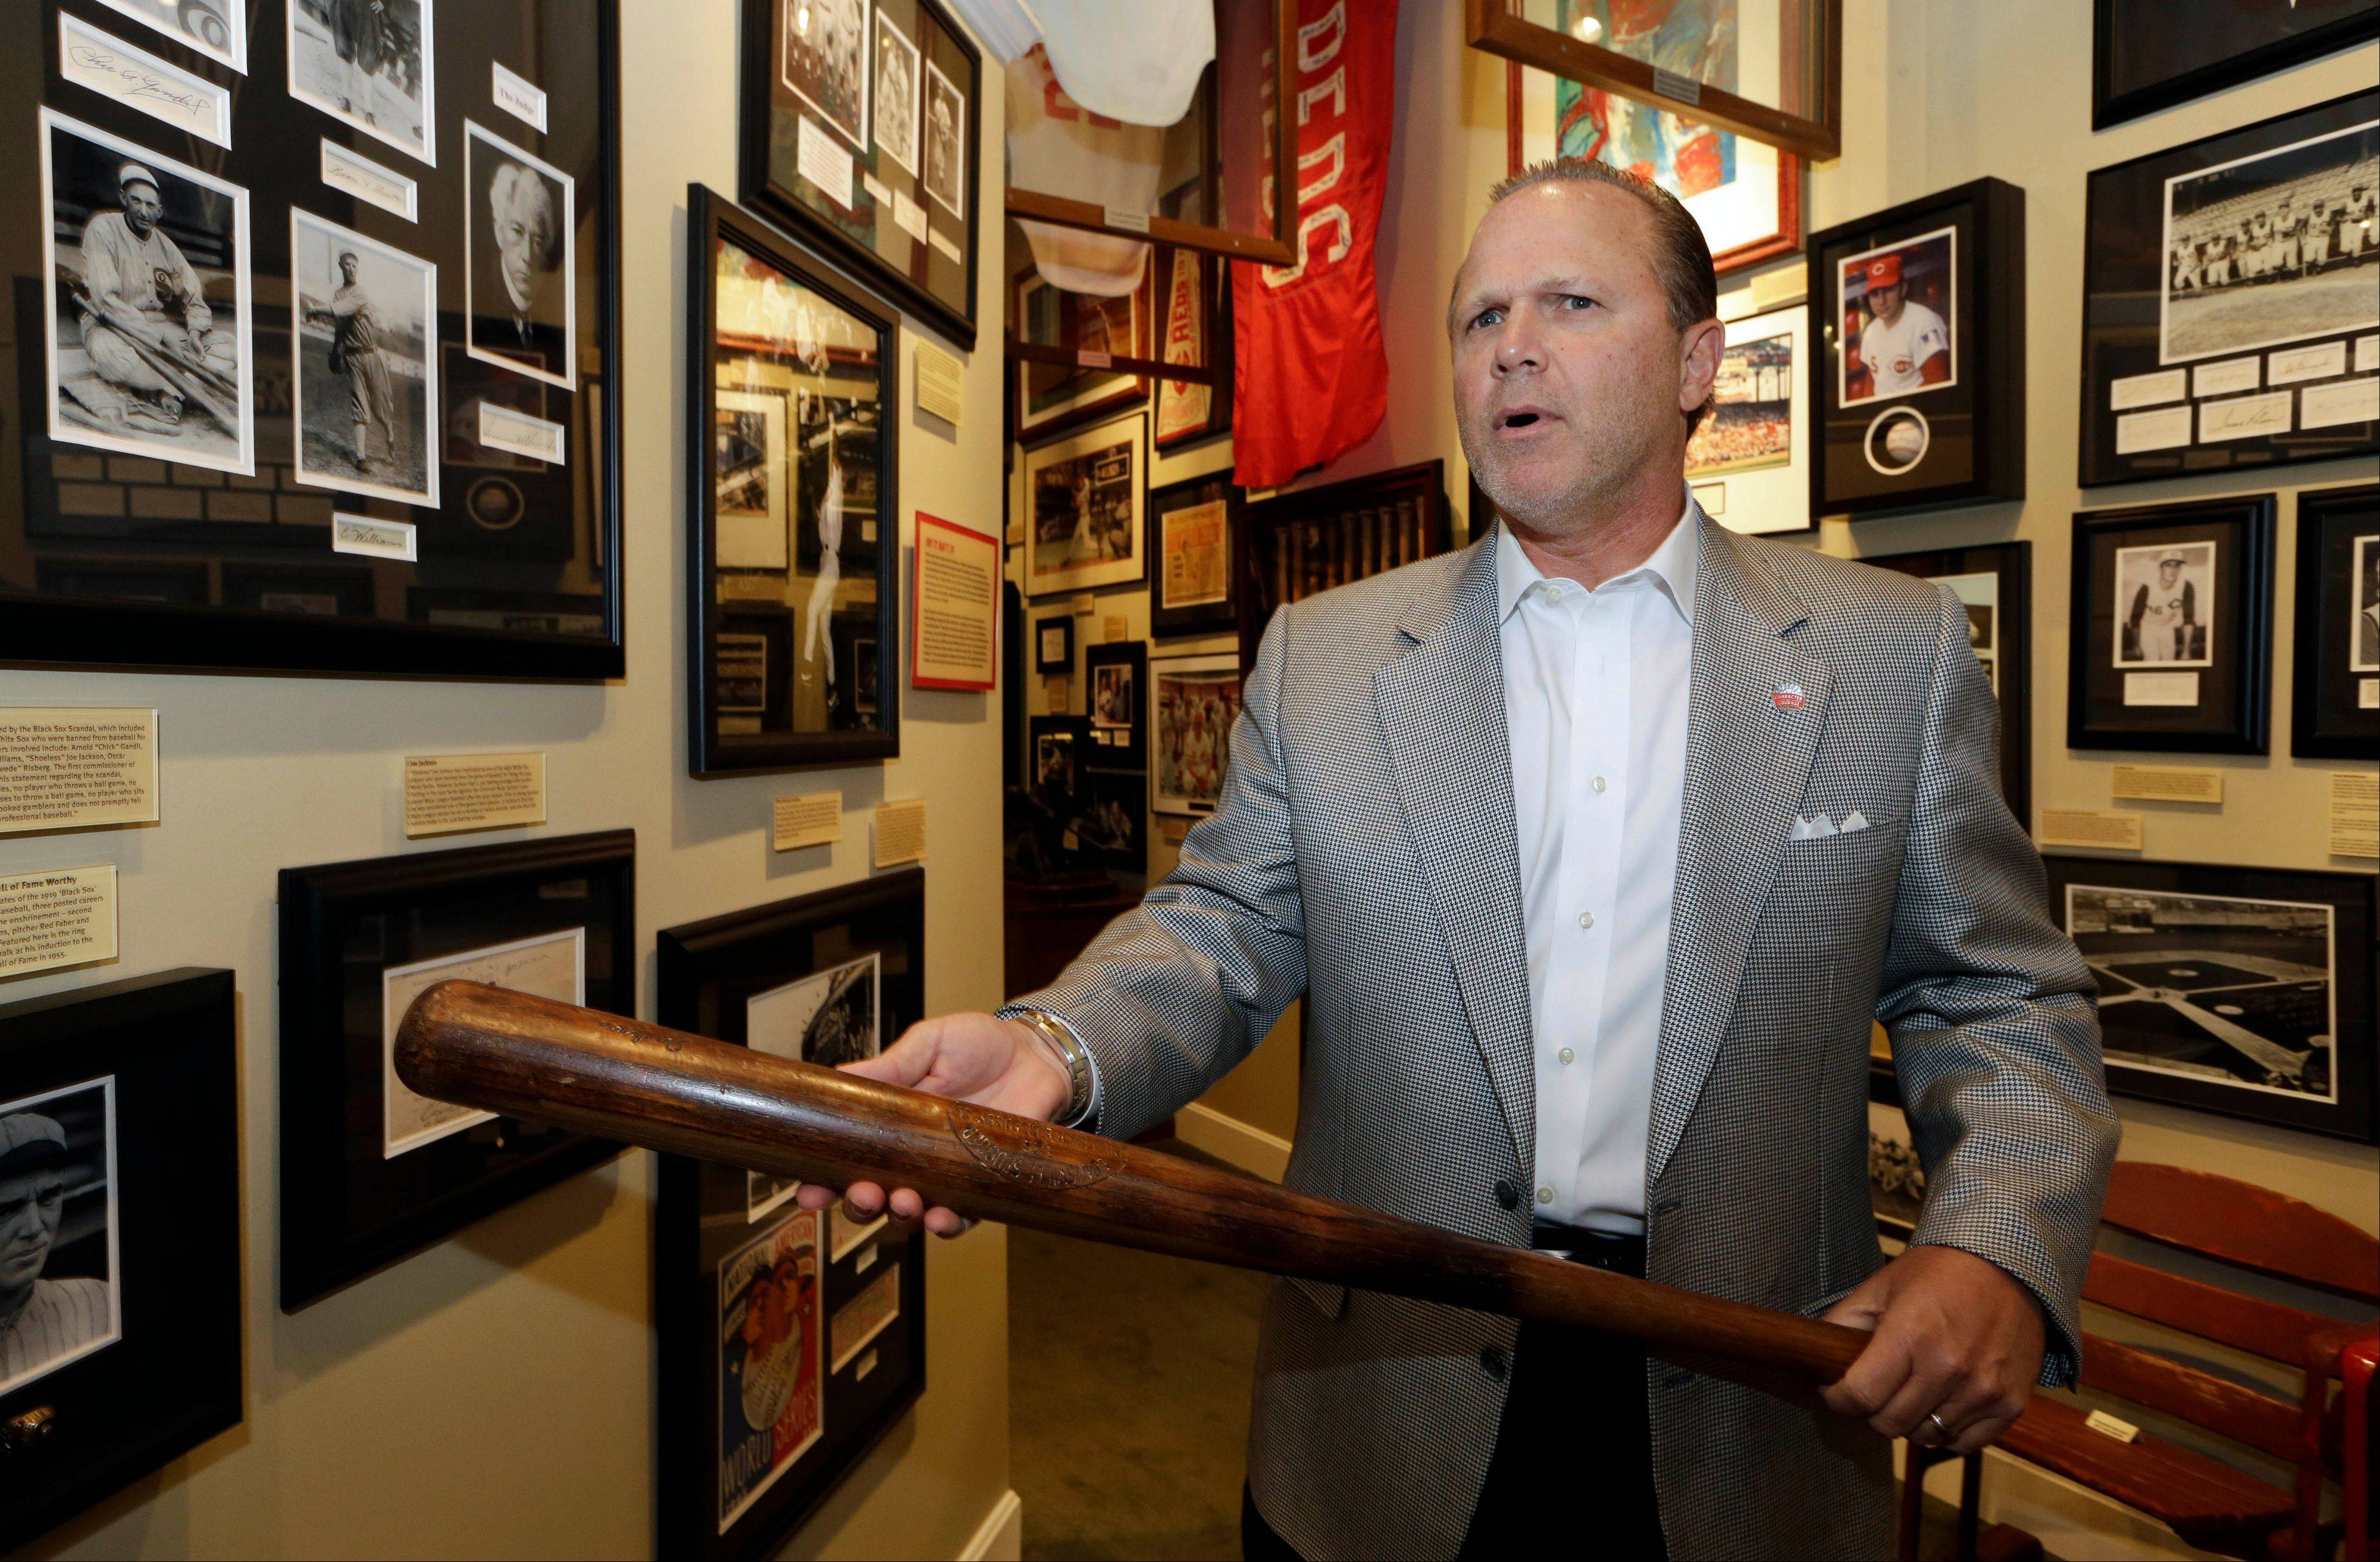 Owner Bob Crotty holds a bat used by Shoeless Joe Jackson as he stands next to a display on the 1919 Chicago White Sox scandal inside the Green Diamond Gallery in Cincinnati.